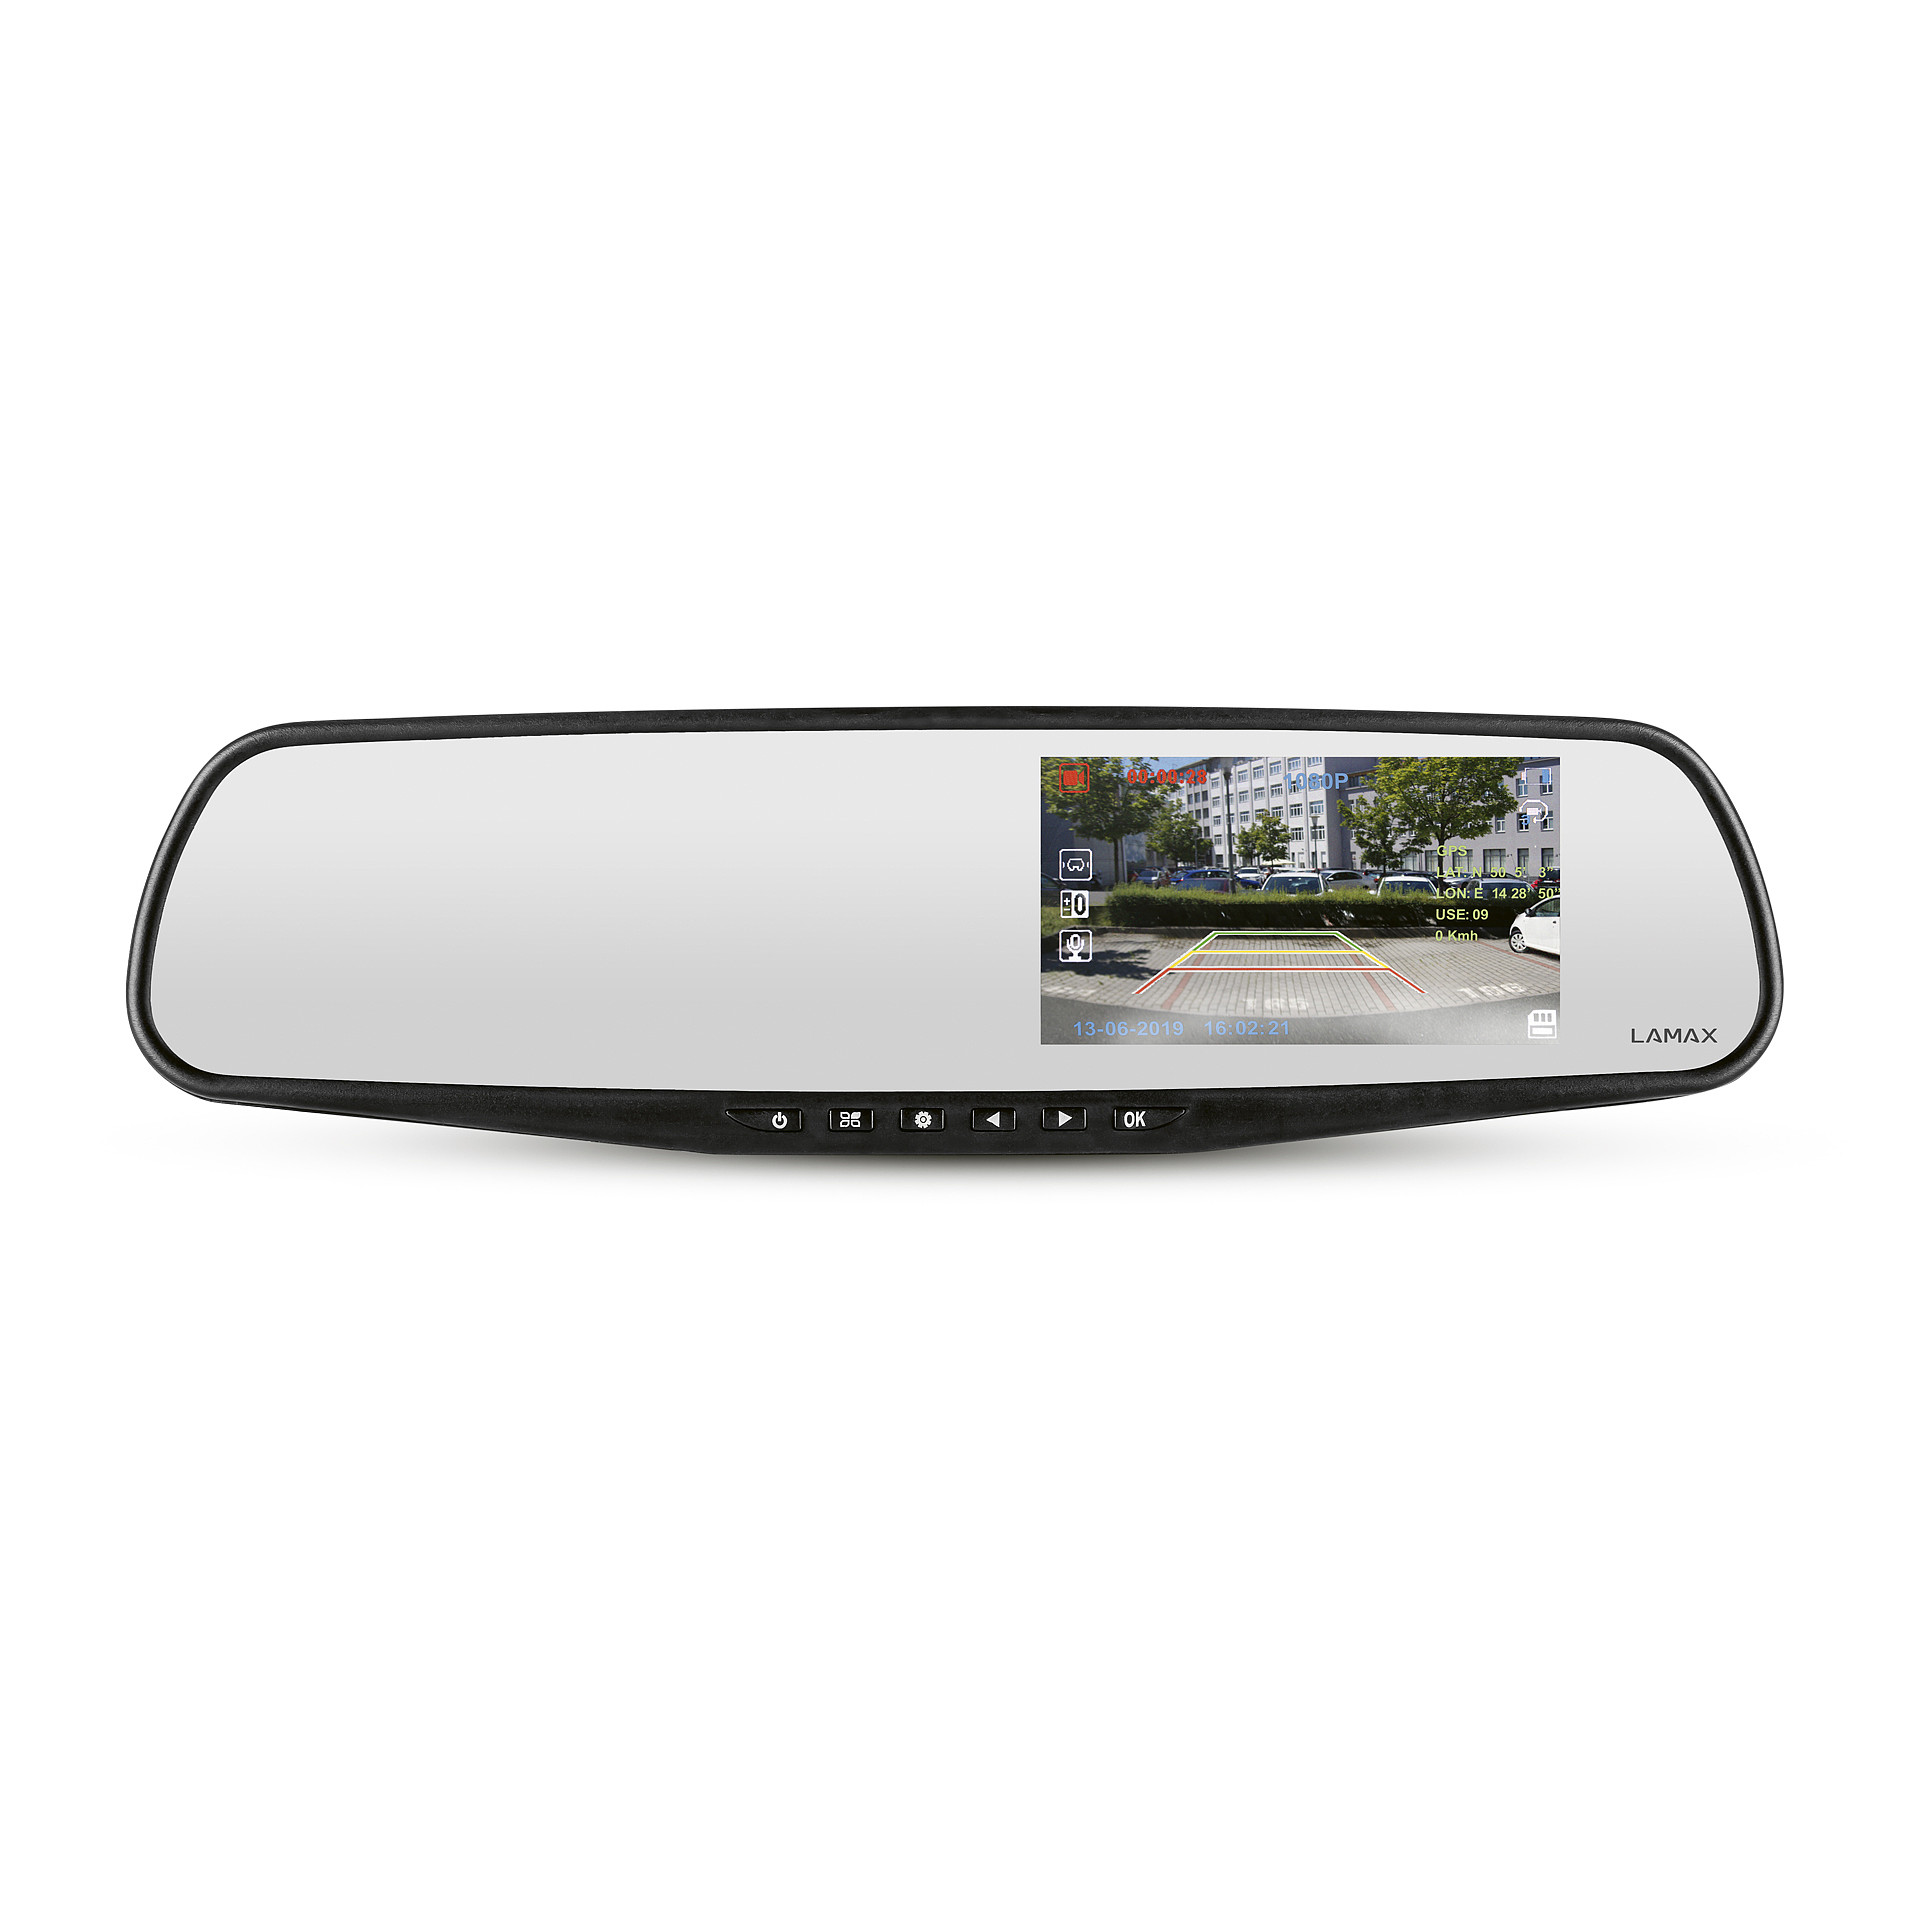 Camera Directly on the Rearview Mirror